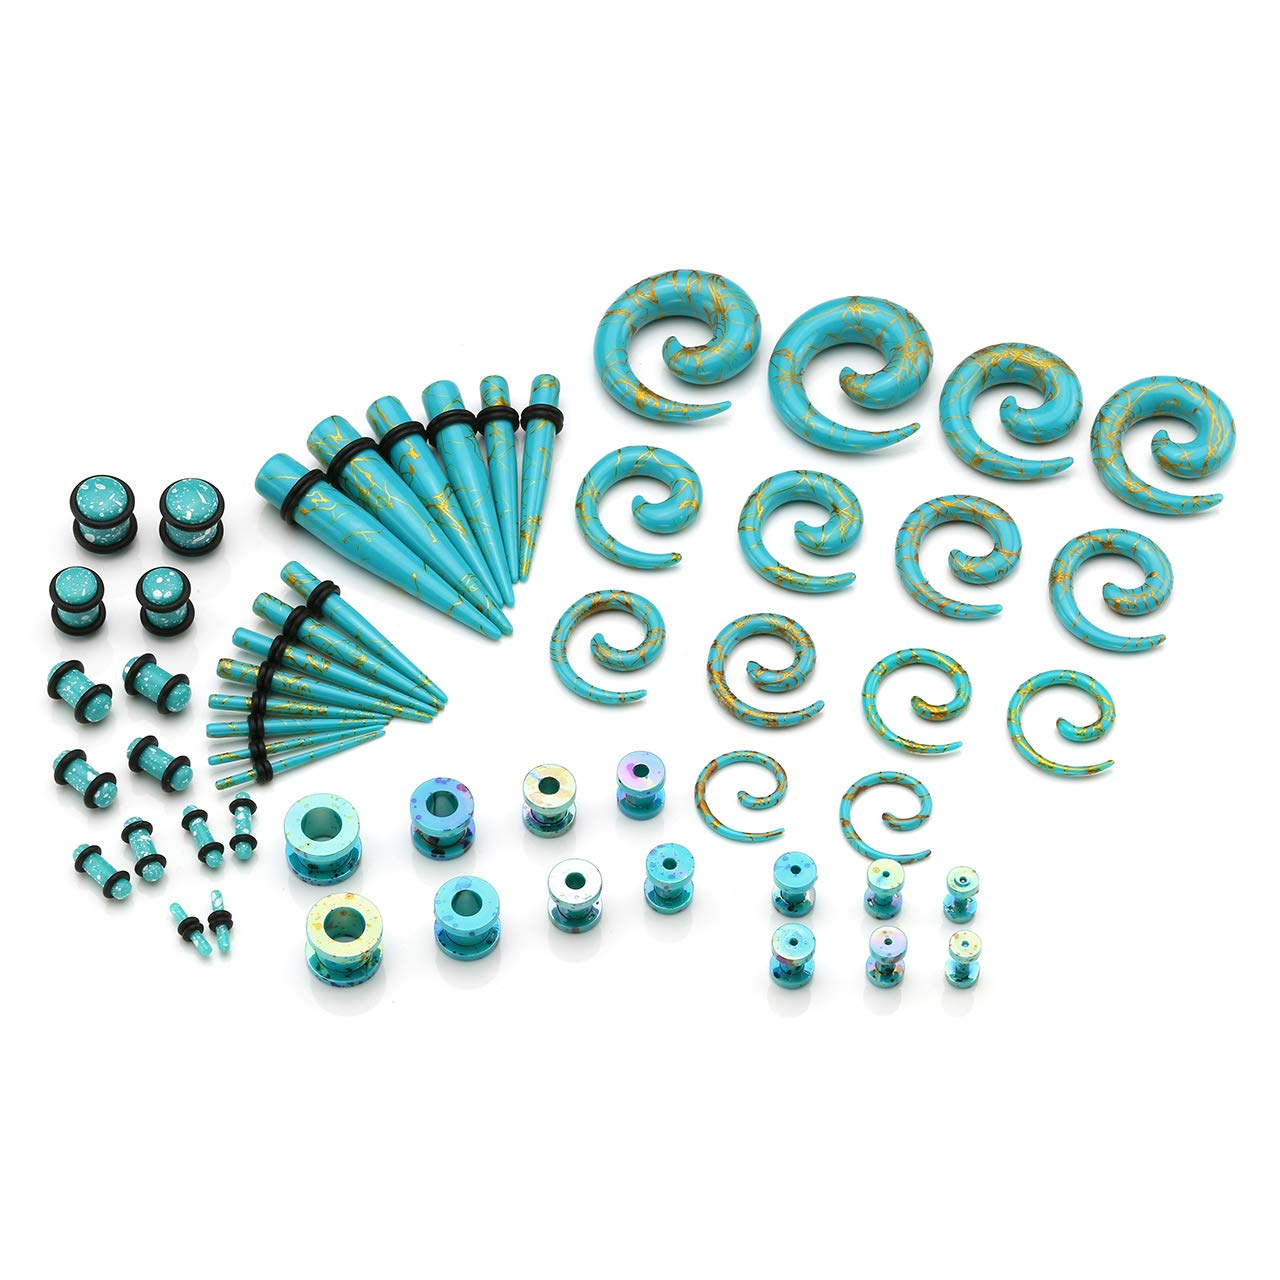 BOPREINA 56 Pieces 12G-00G Acrylic Tapers + Screw Tunnels + Plugs with O-Ring + Spiral Tapers Gauge Kit Ear Stretching Starter Set Jewelry by BOPREINA